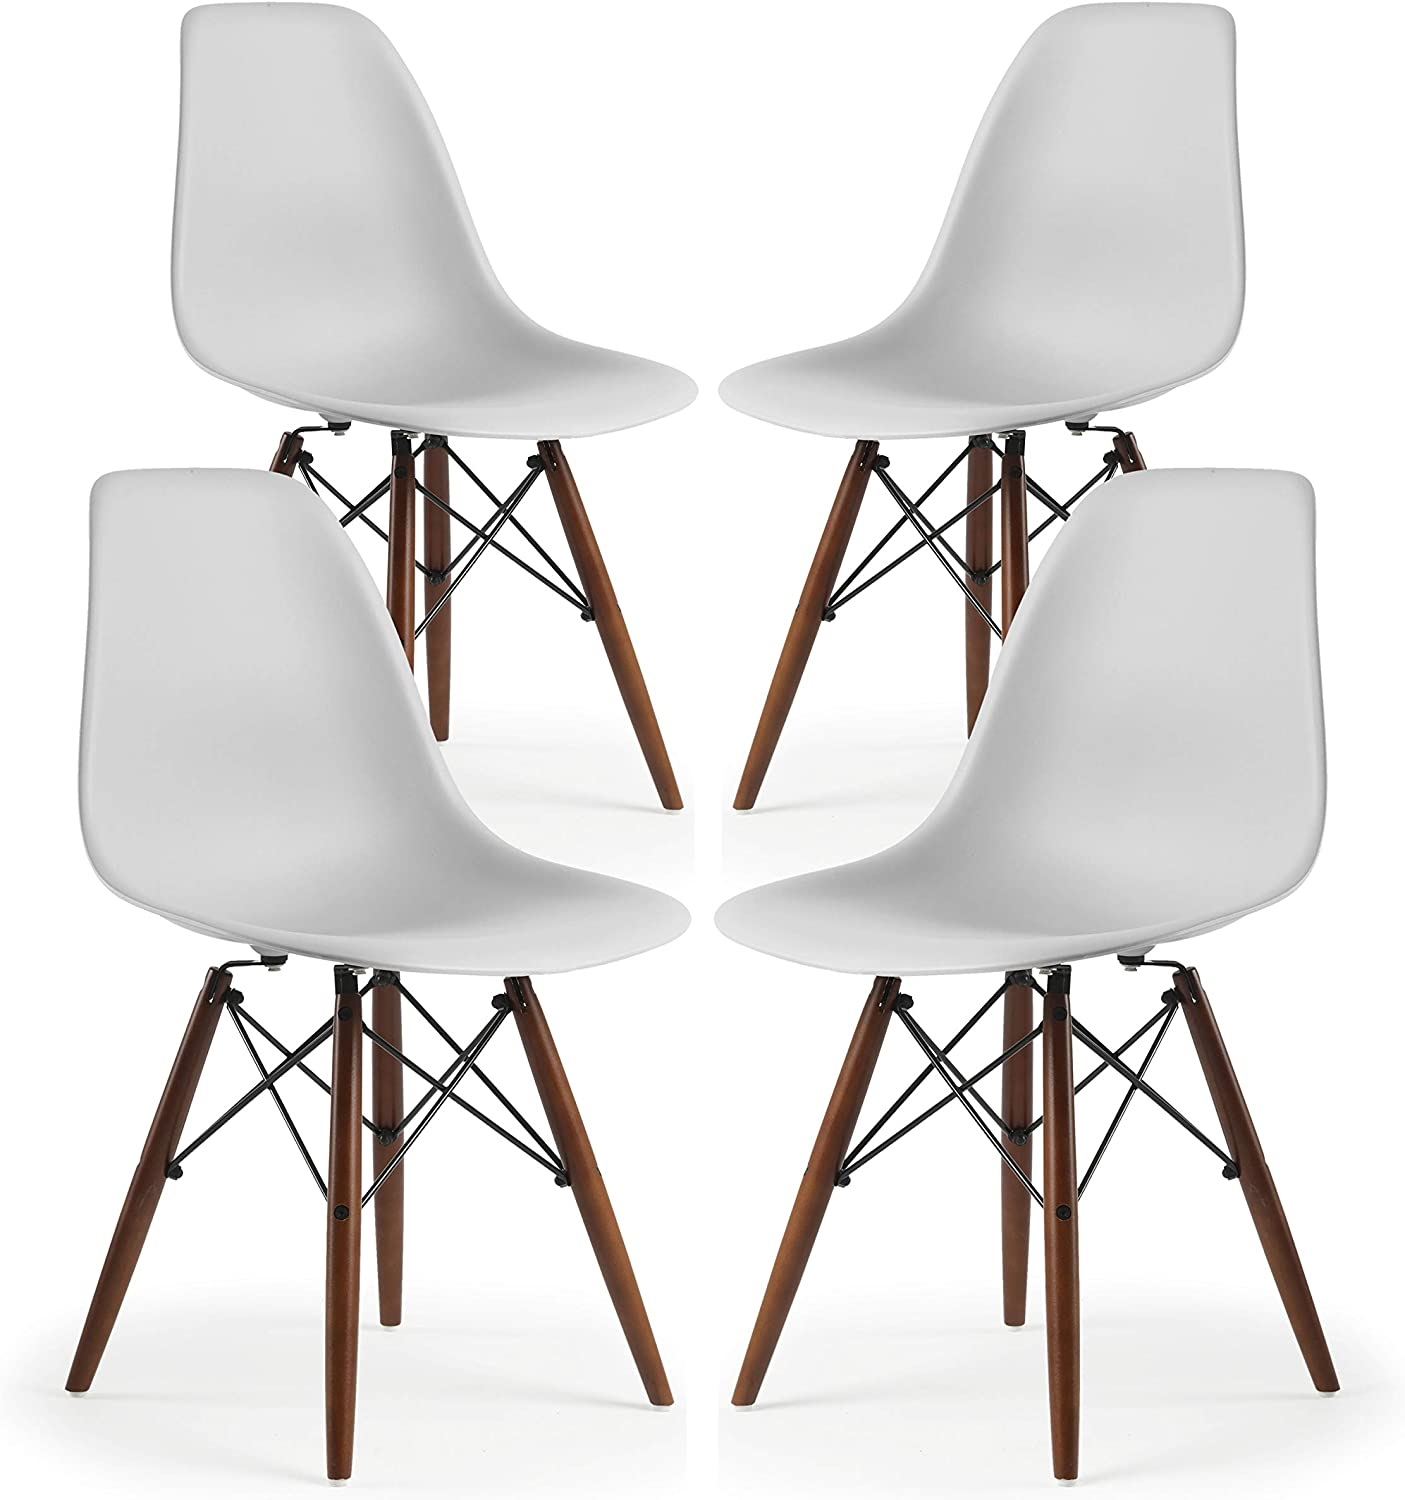 Poly and Bark Vortex Modern Mid-Century Side Chair with Wooden Walnut Legs for Kitchen, Living Room and Dining Room, Harbor Grey (Set of 4)